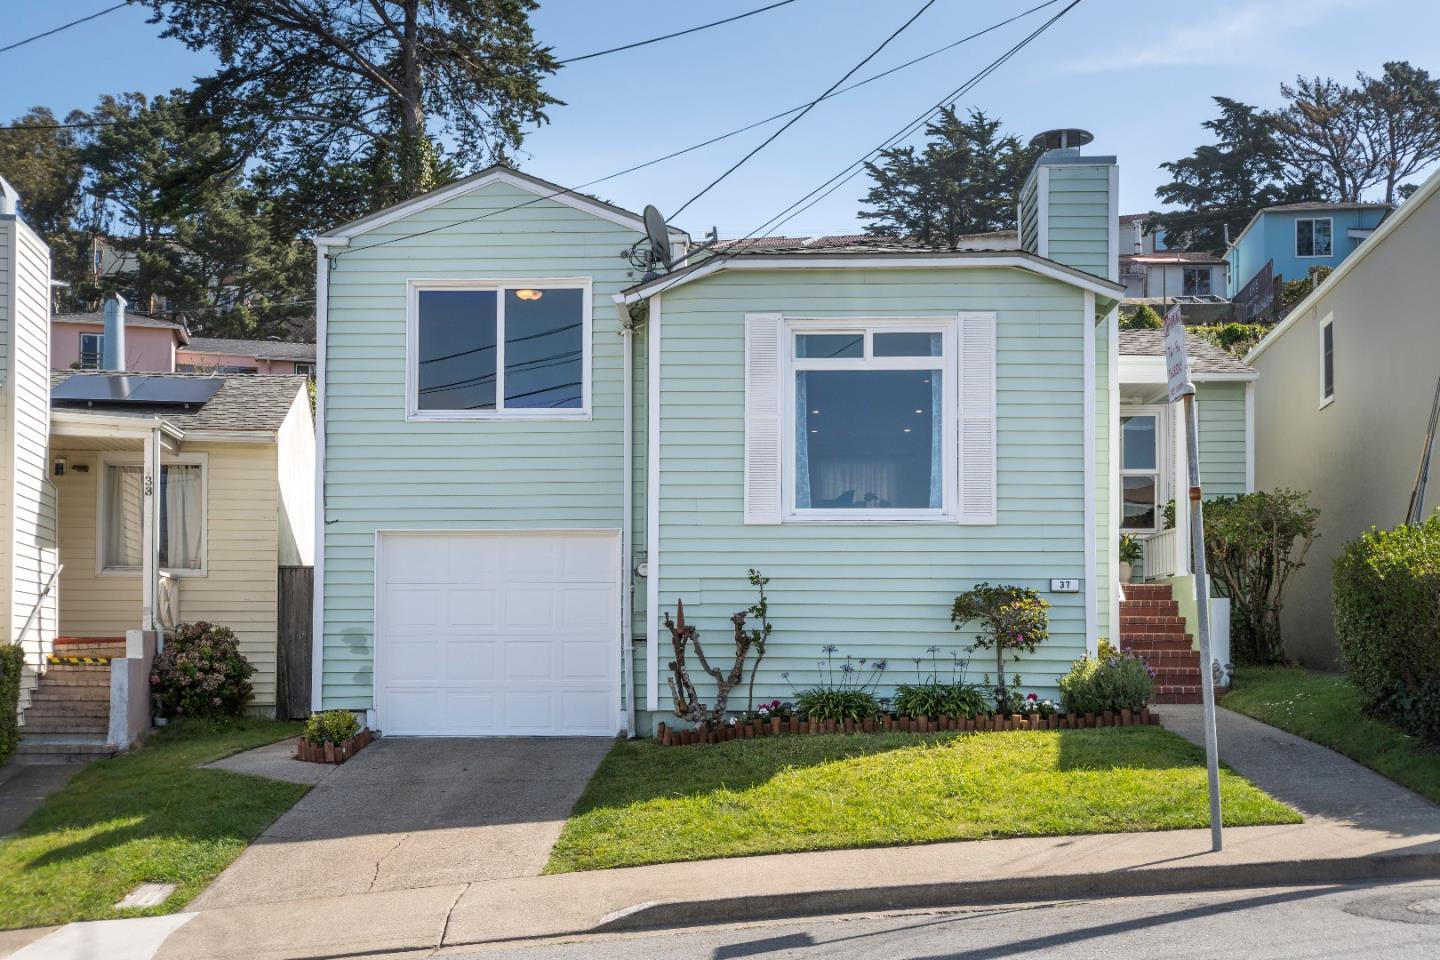 37 Muirwood Dr, Daly City, CA 94014 - 4 Beds   2 Baths (Sold ...